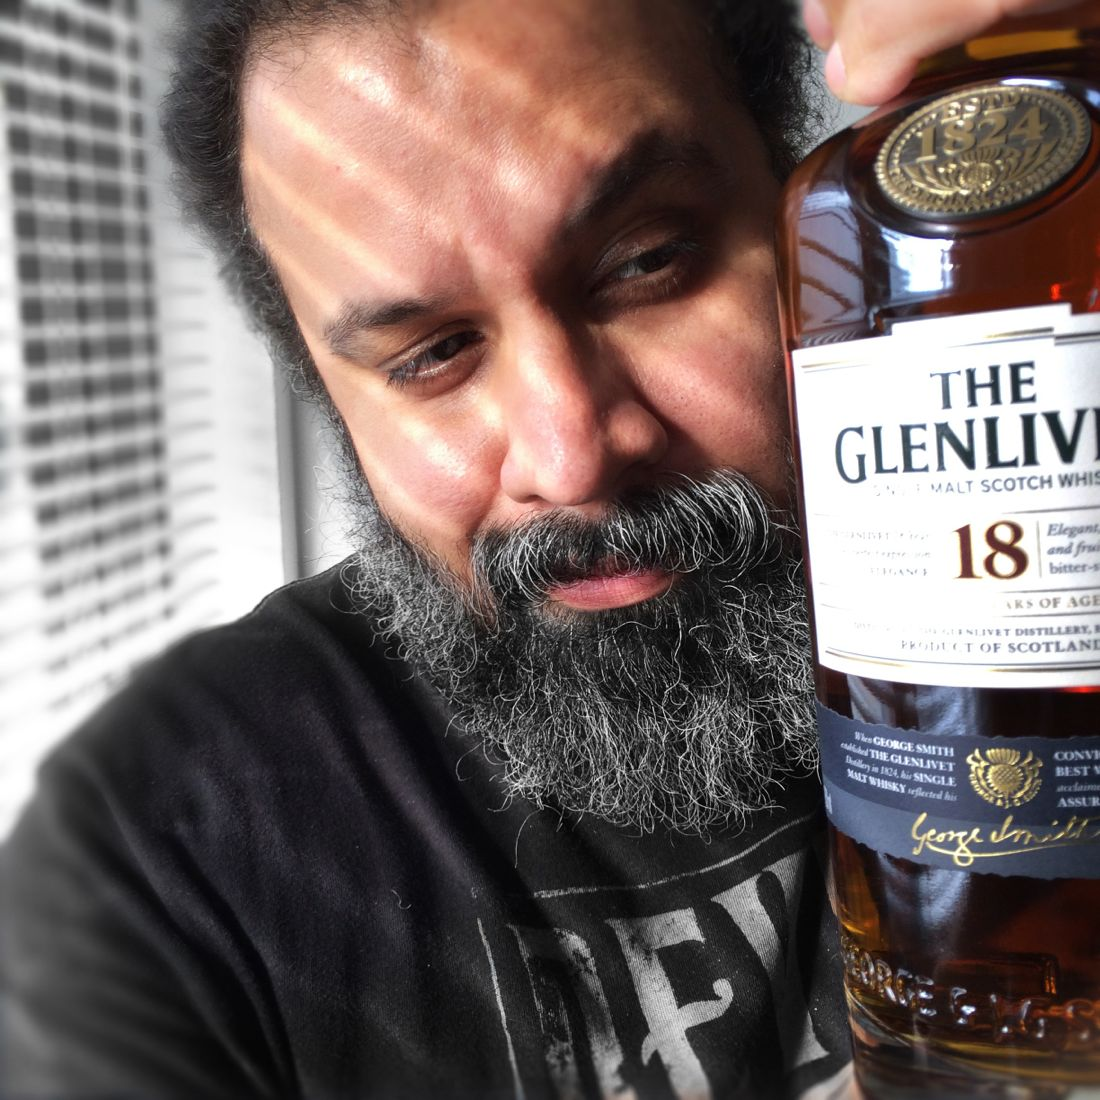 William Fuentes The Glenlivet 18